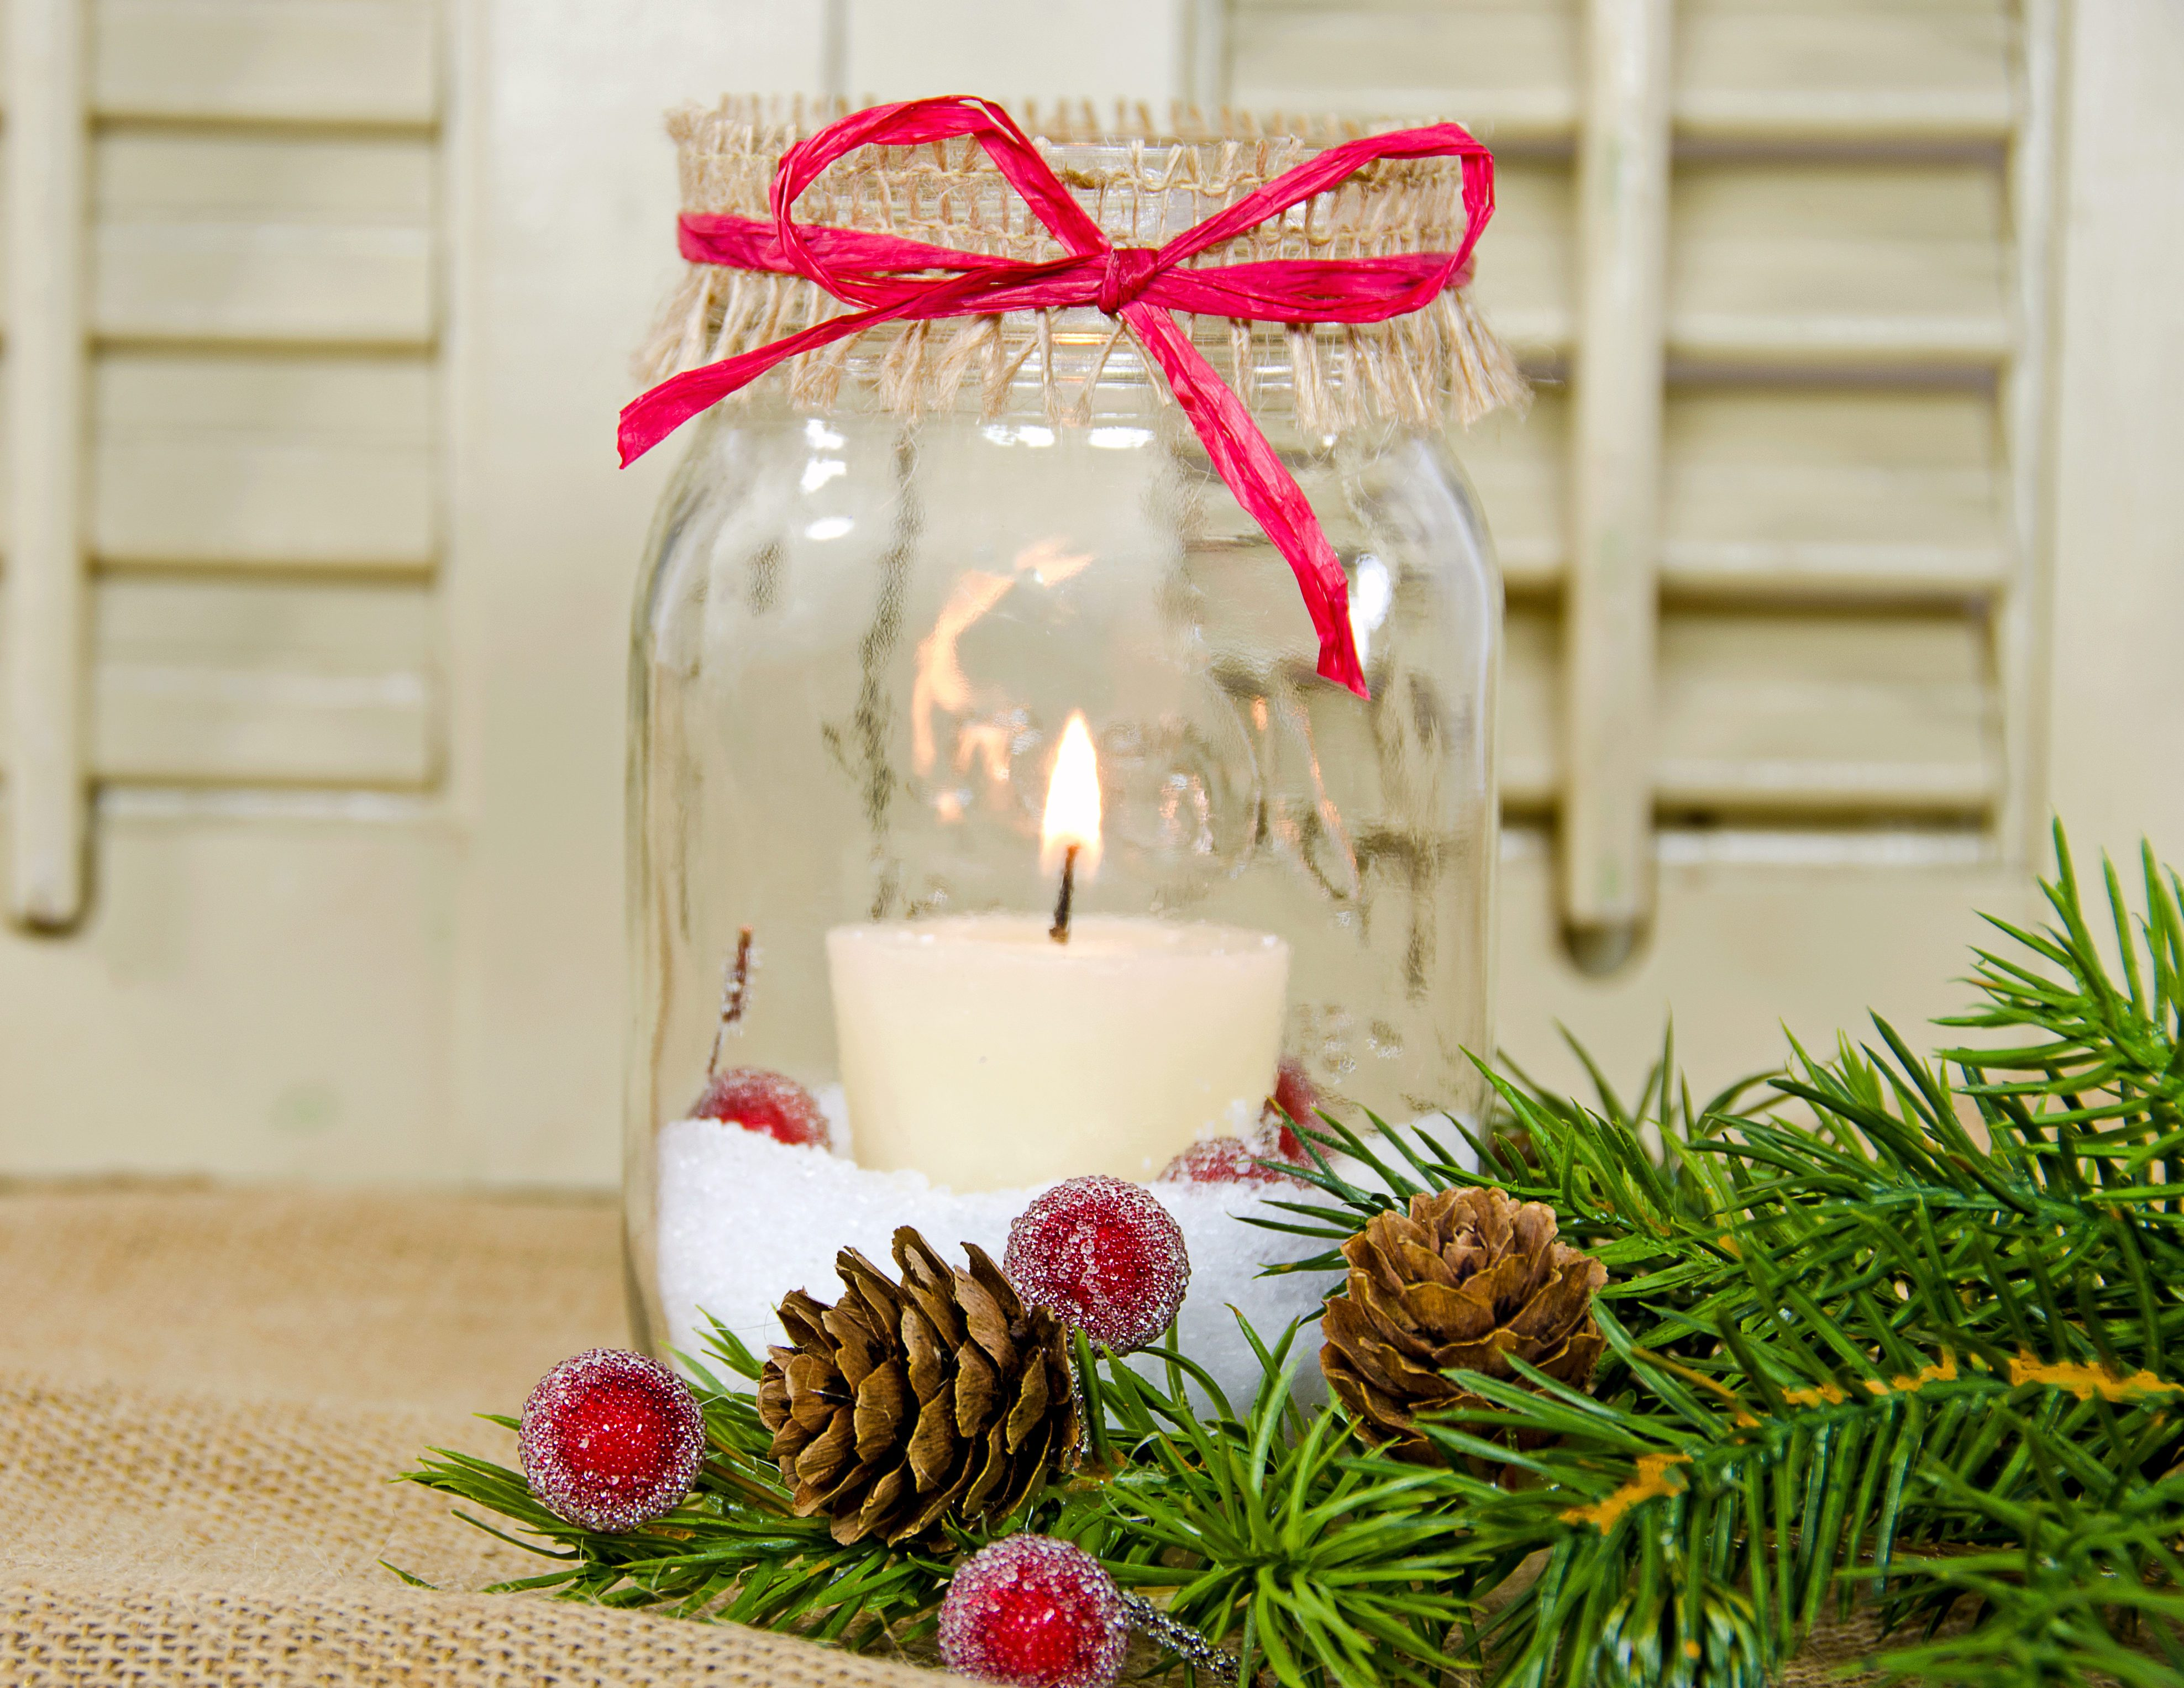 Christmas candle in a mason jar with pine bough and sparkling red berry